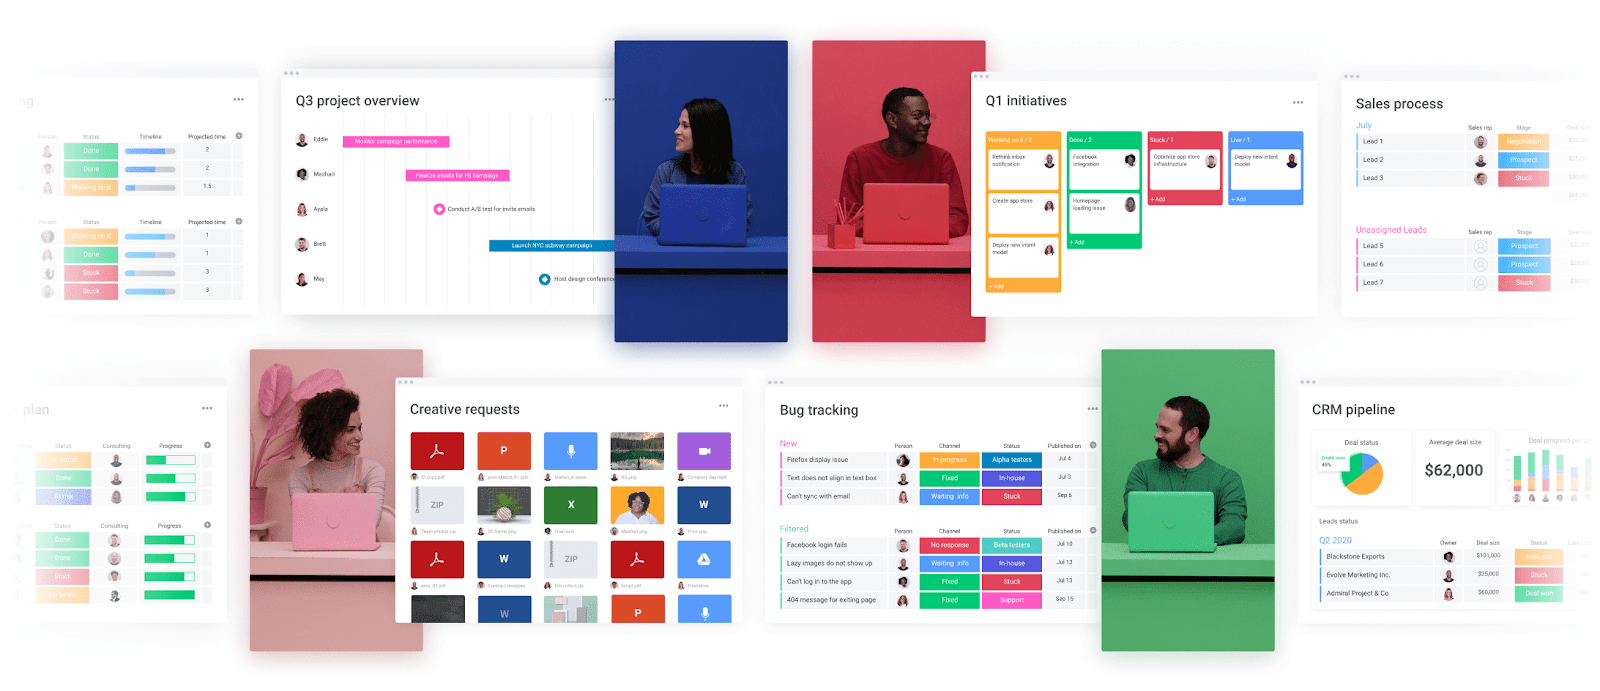 monday.com's visual dashboards make it easy to see work at a glance.